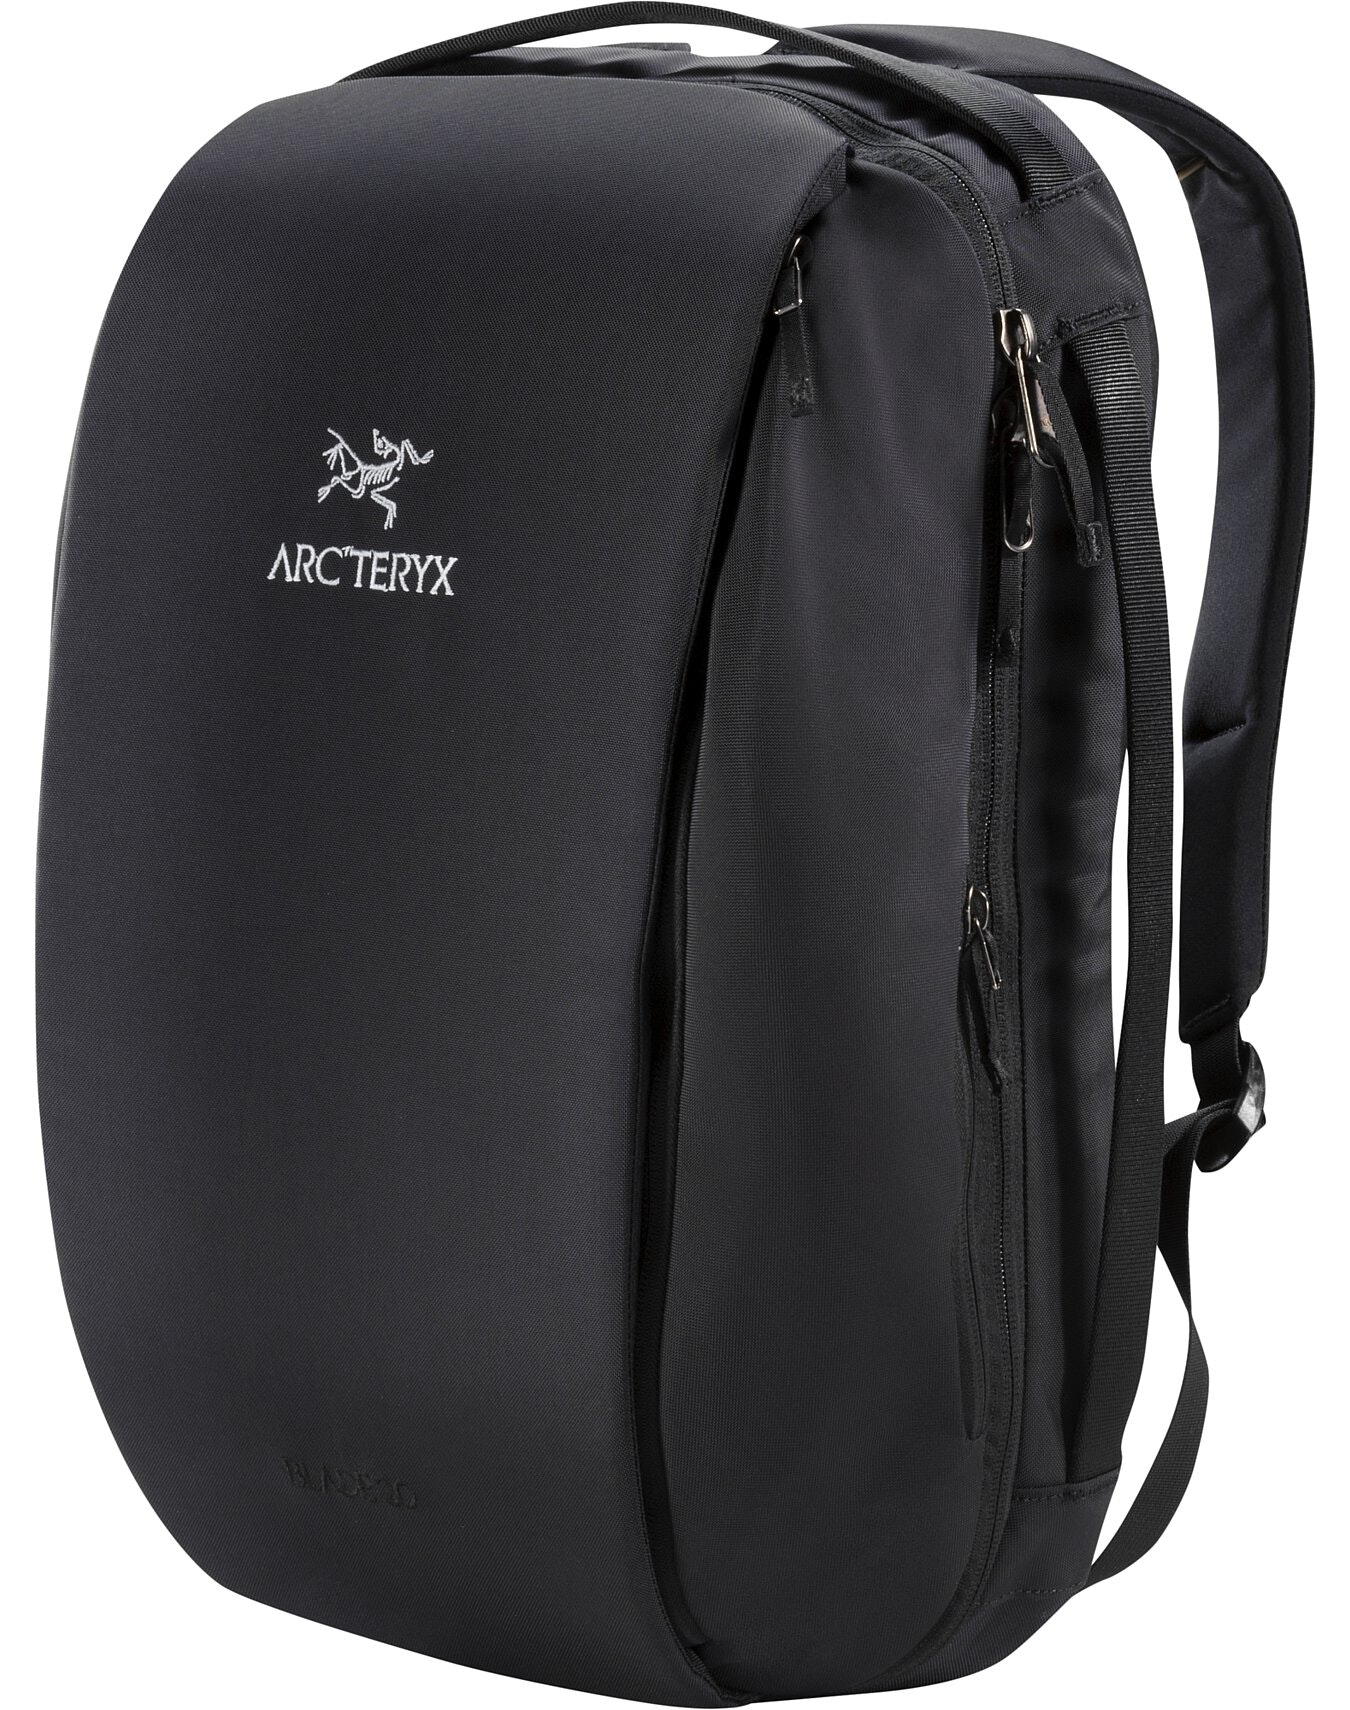 Blade 20 Backpack Black